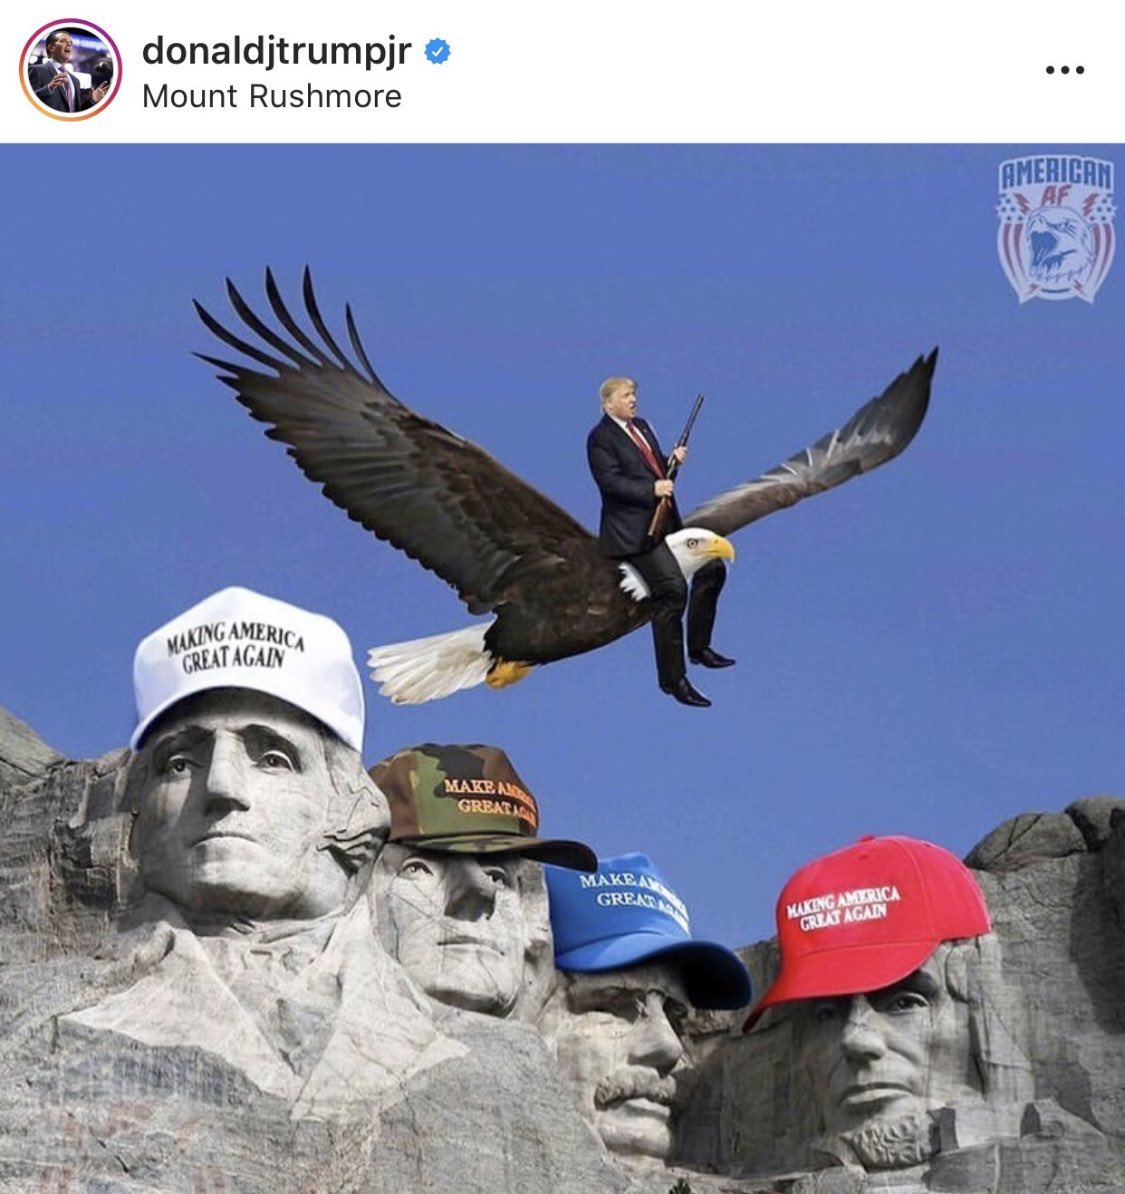 That's not even the correct way to ride an eagle smh